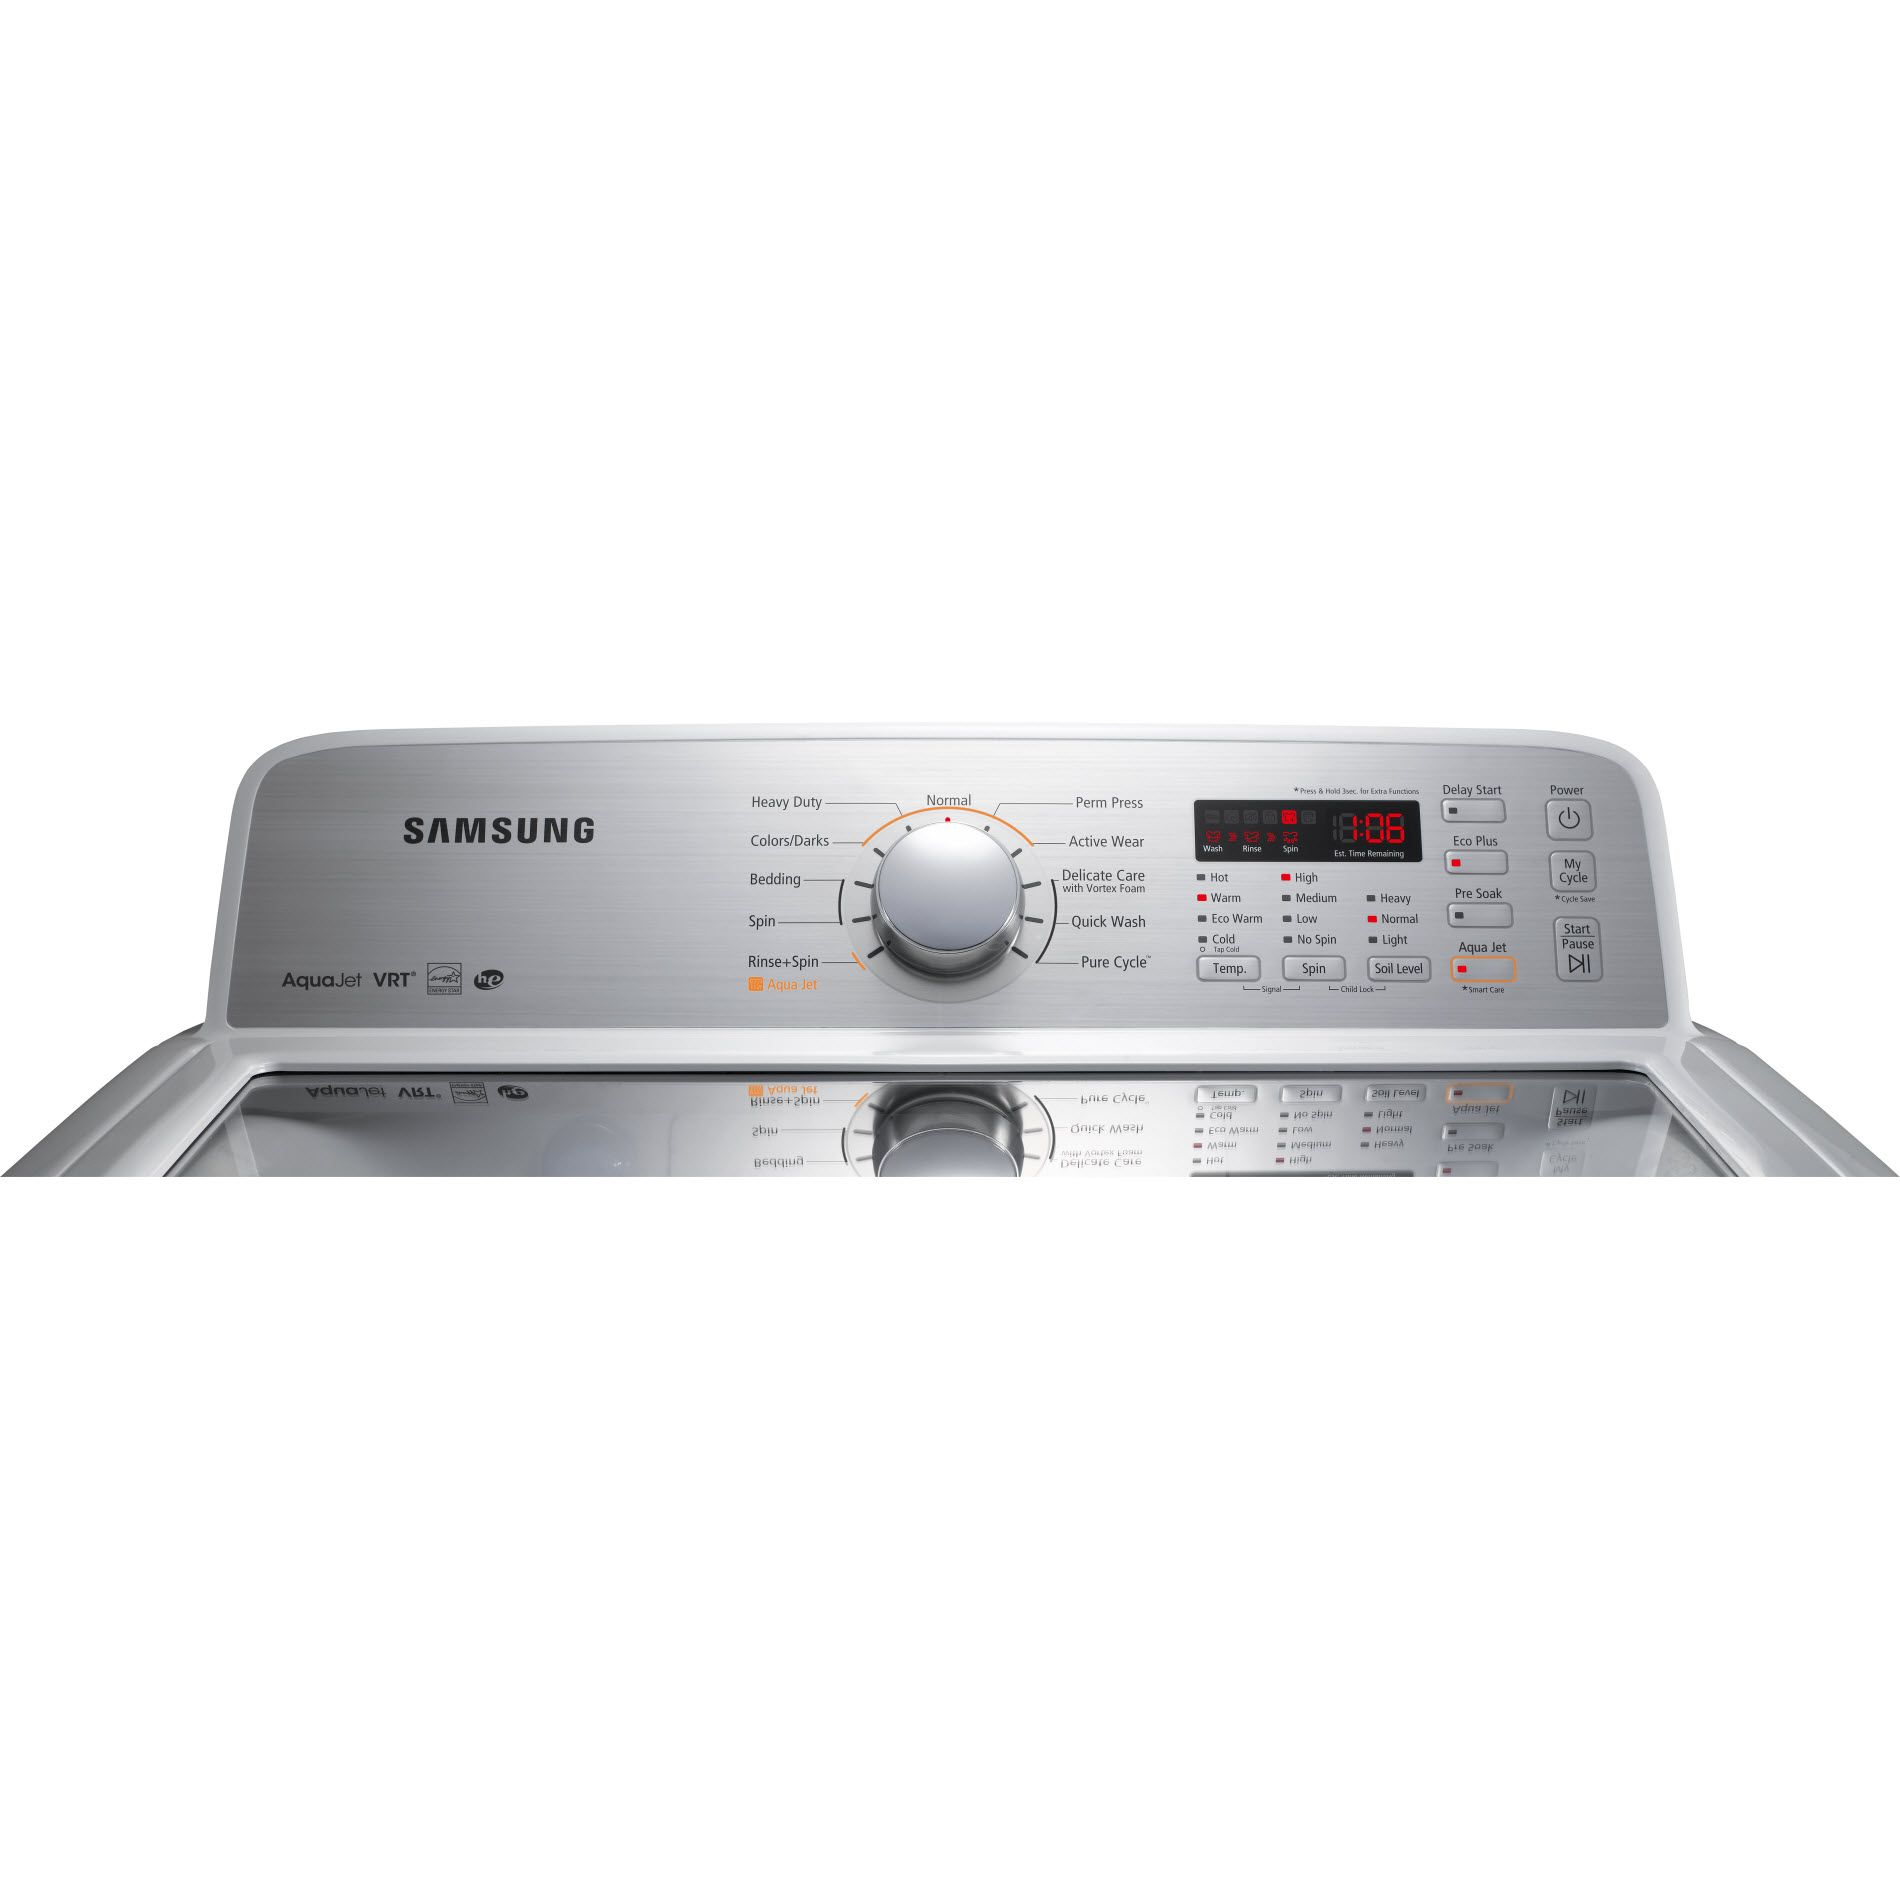 Samsung 4.5 cu. ft. High-Efficiency Top-Load Washer